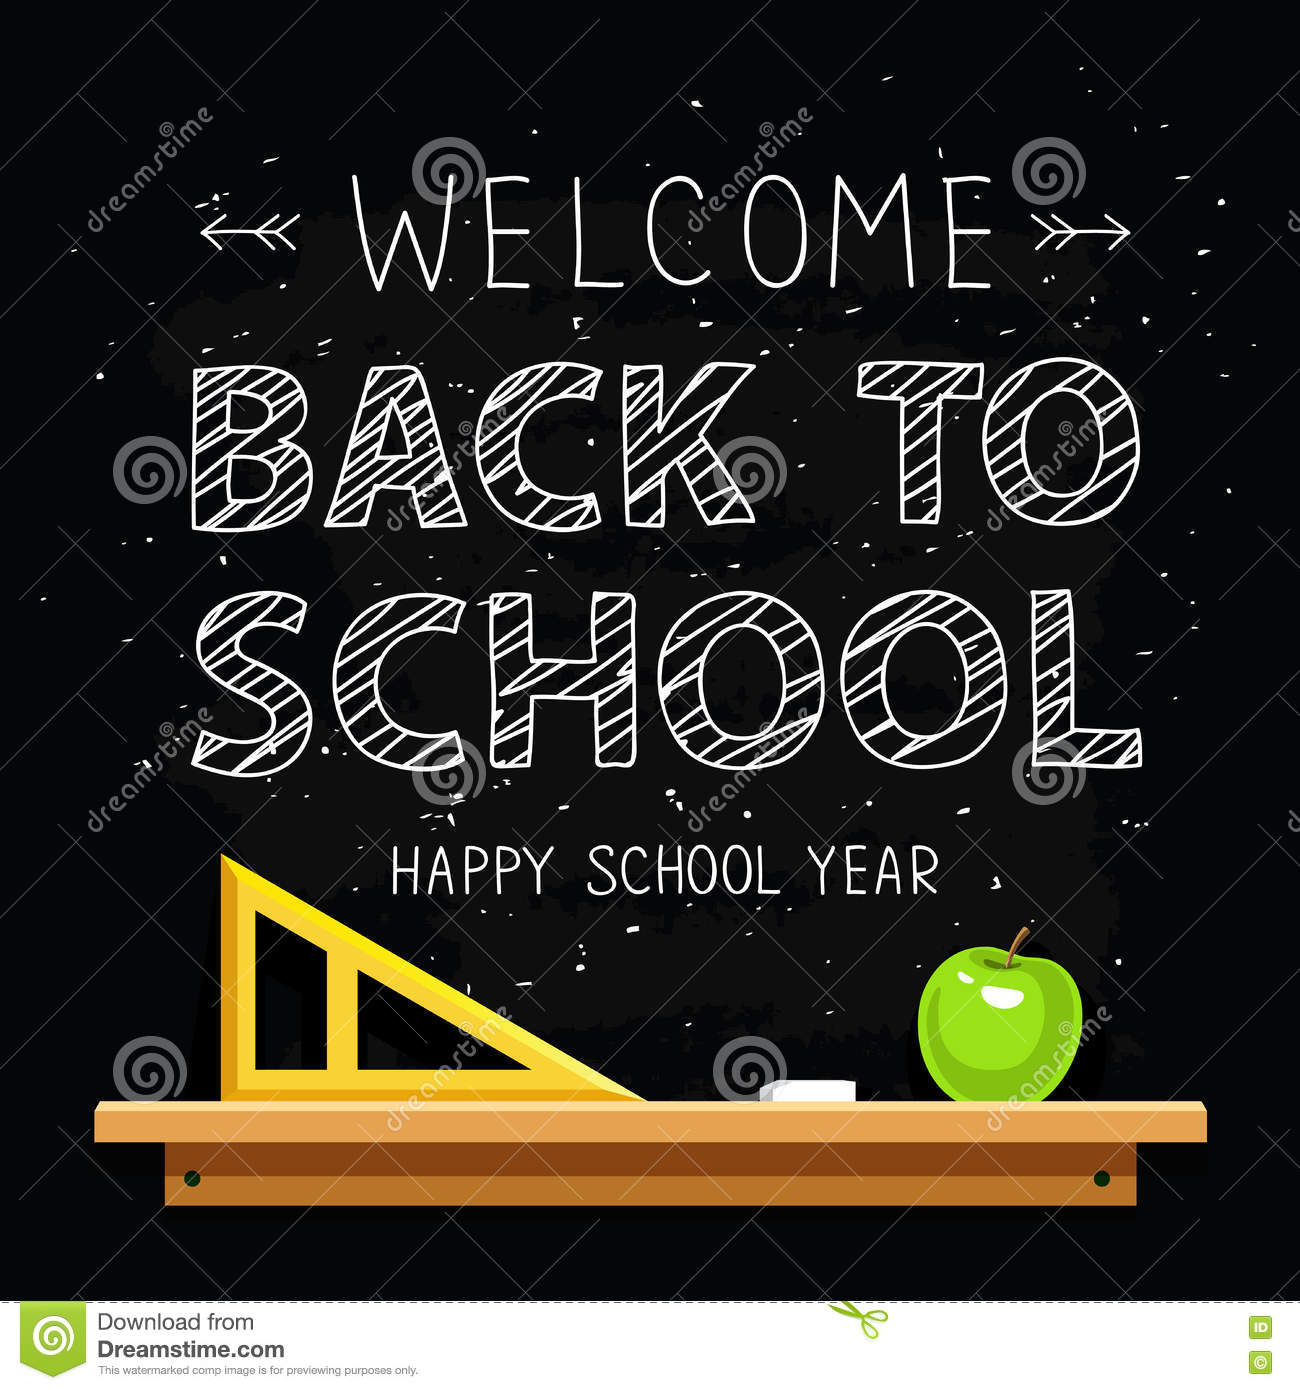 Welcome back to school stock vector. Illustration of arrow   72064787